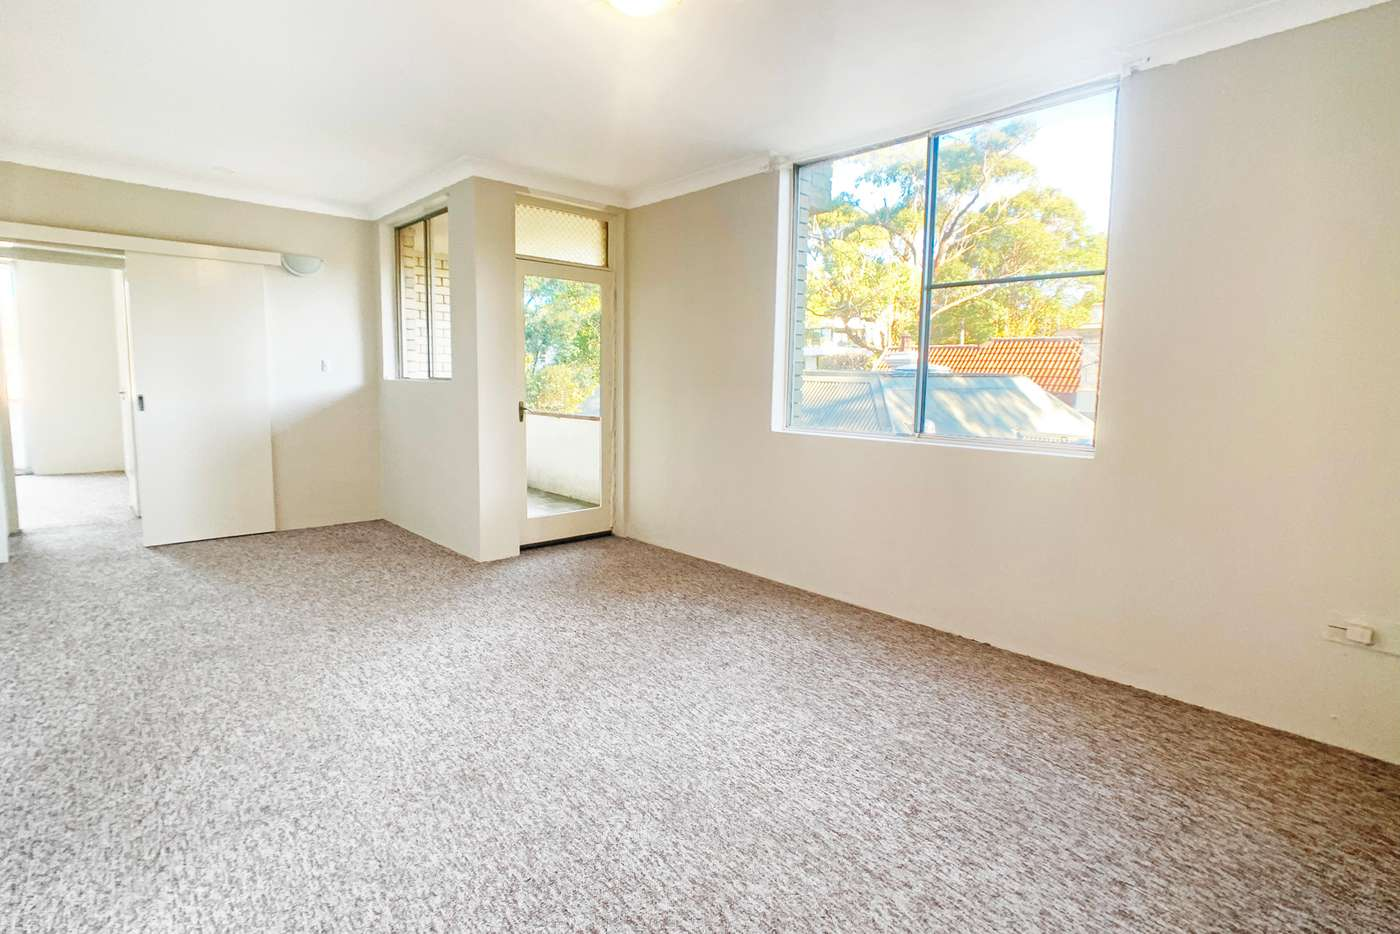 Main view of Homely apartment listing, 3/46 Evans Street, Bronte NSW 2024